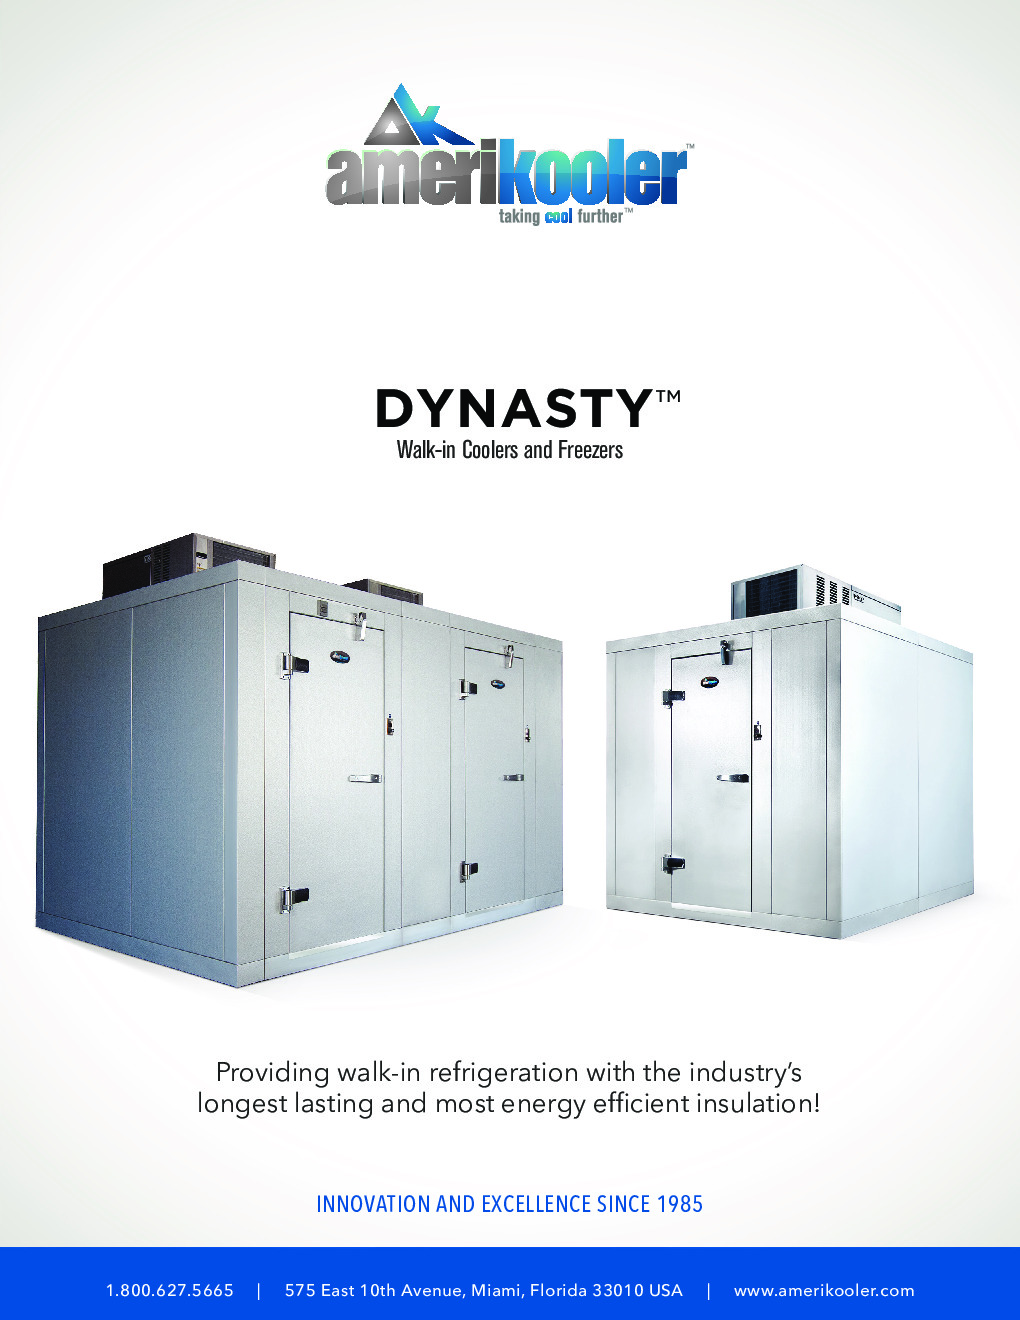 AmeriKooler DW101277F-4/8-RM 10' X 12' Walk-In Cooler, 8' L Cooler with Floor and 4' L Freezer, Remote